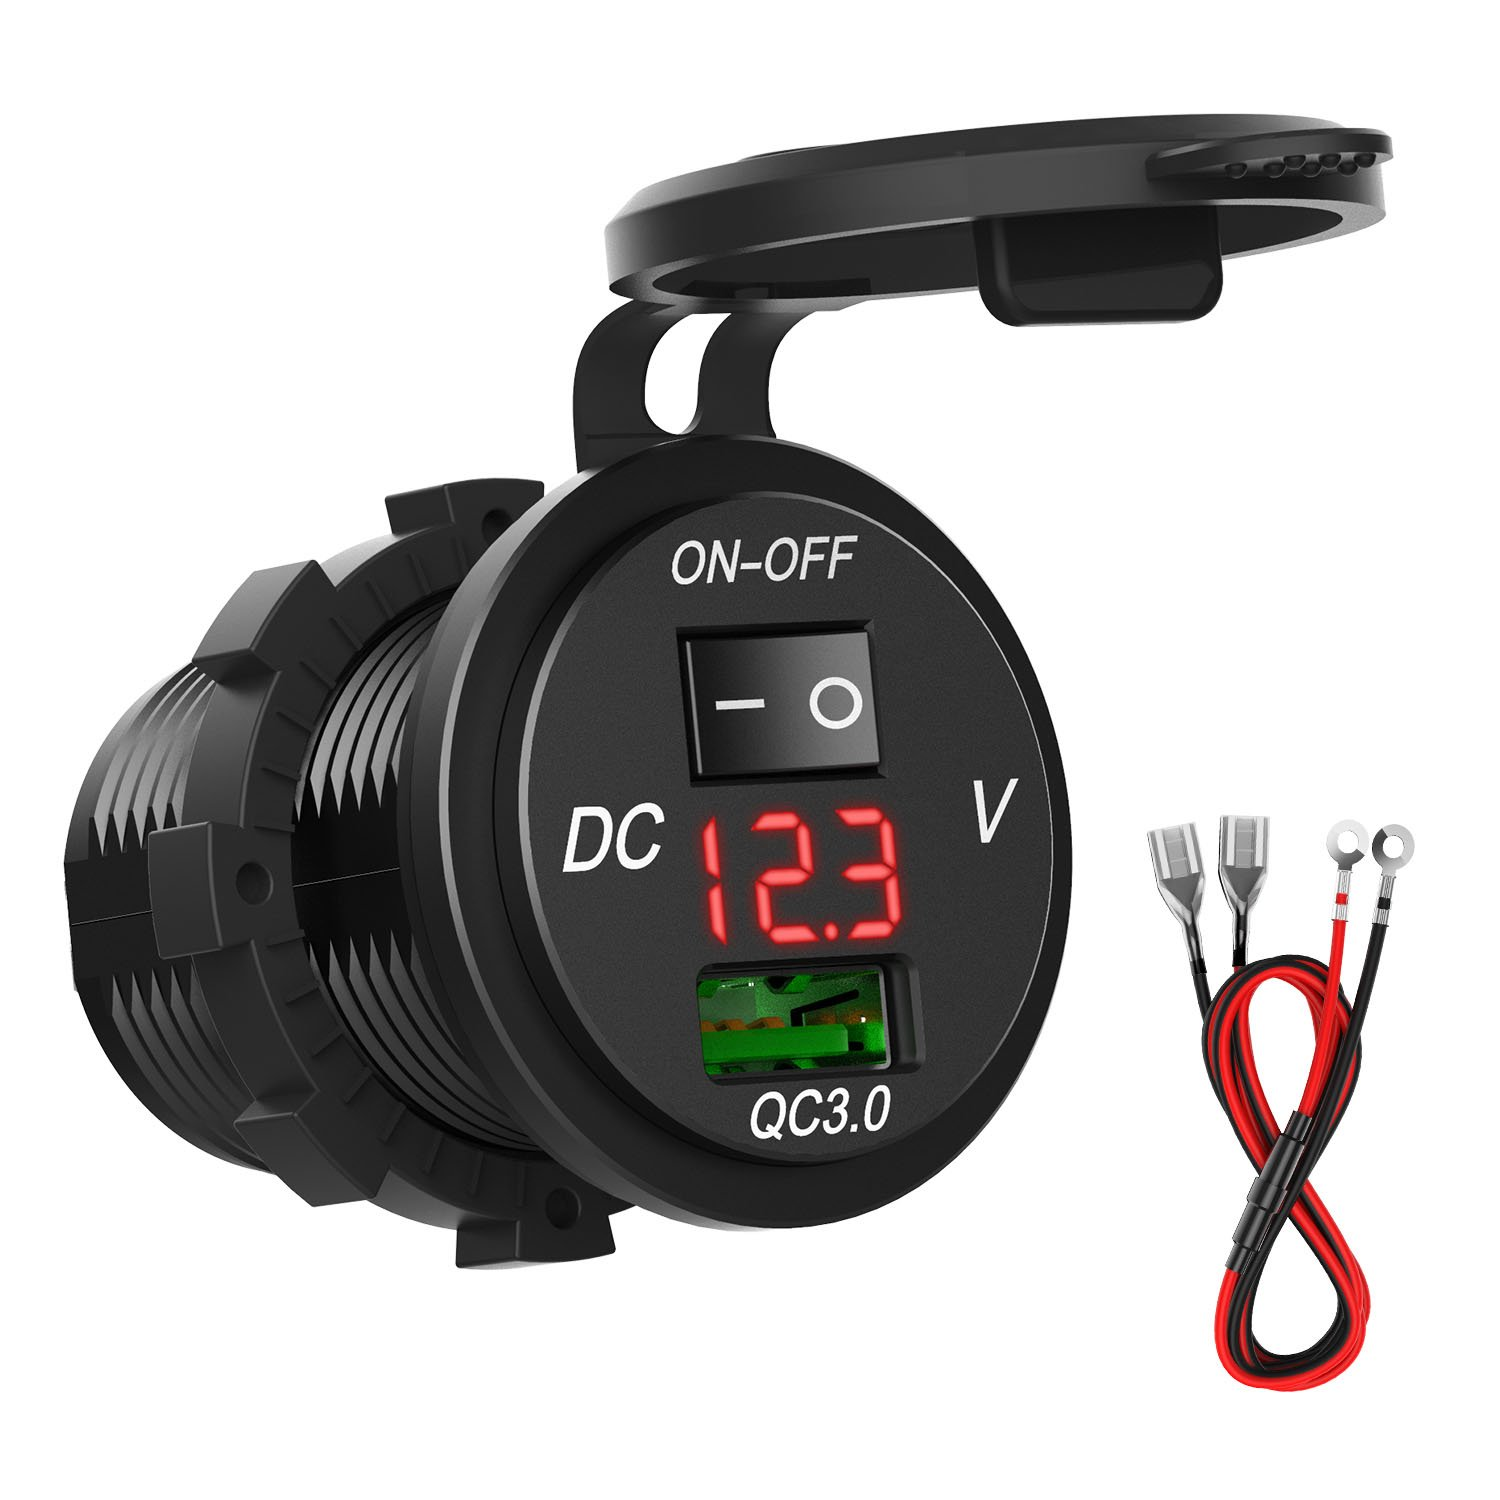 [Quick Charger 3.0] HiGoing 12V/24V Marine USB Outlet, Waterproof USB Car Charger Socket with Voltmeter and On/Off Switch for Marine, Boat, Motorcycle